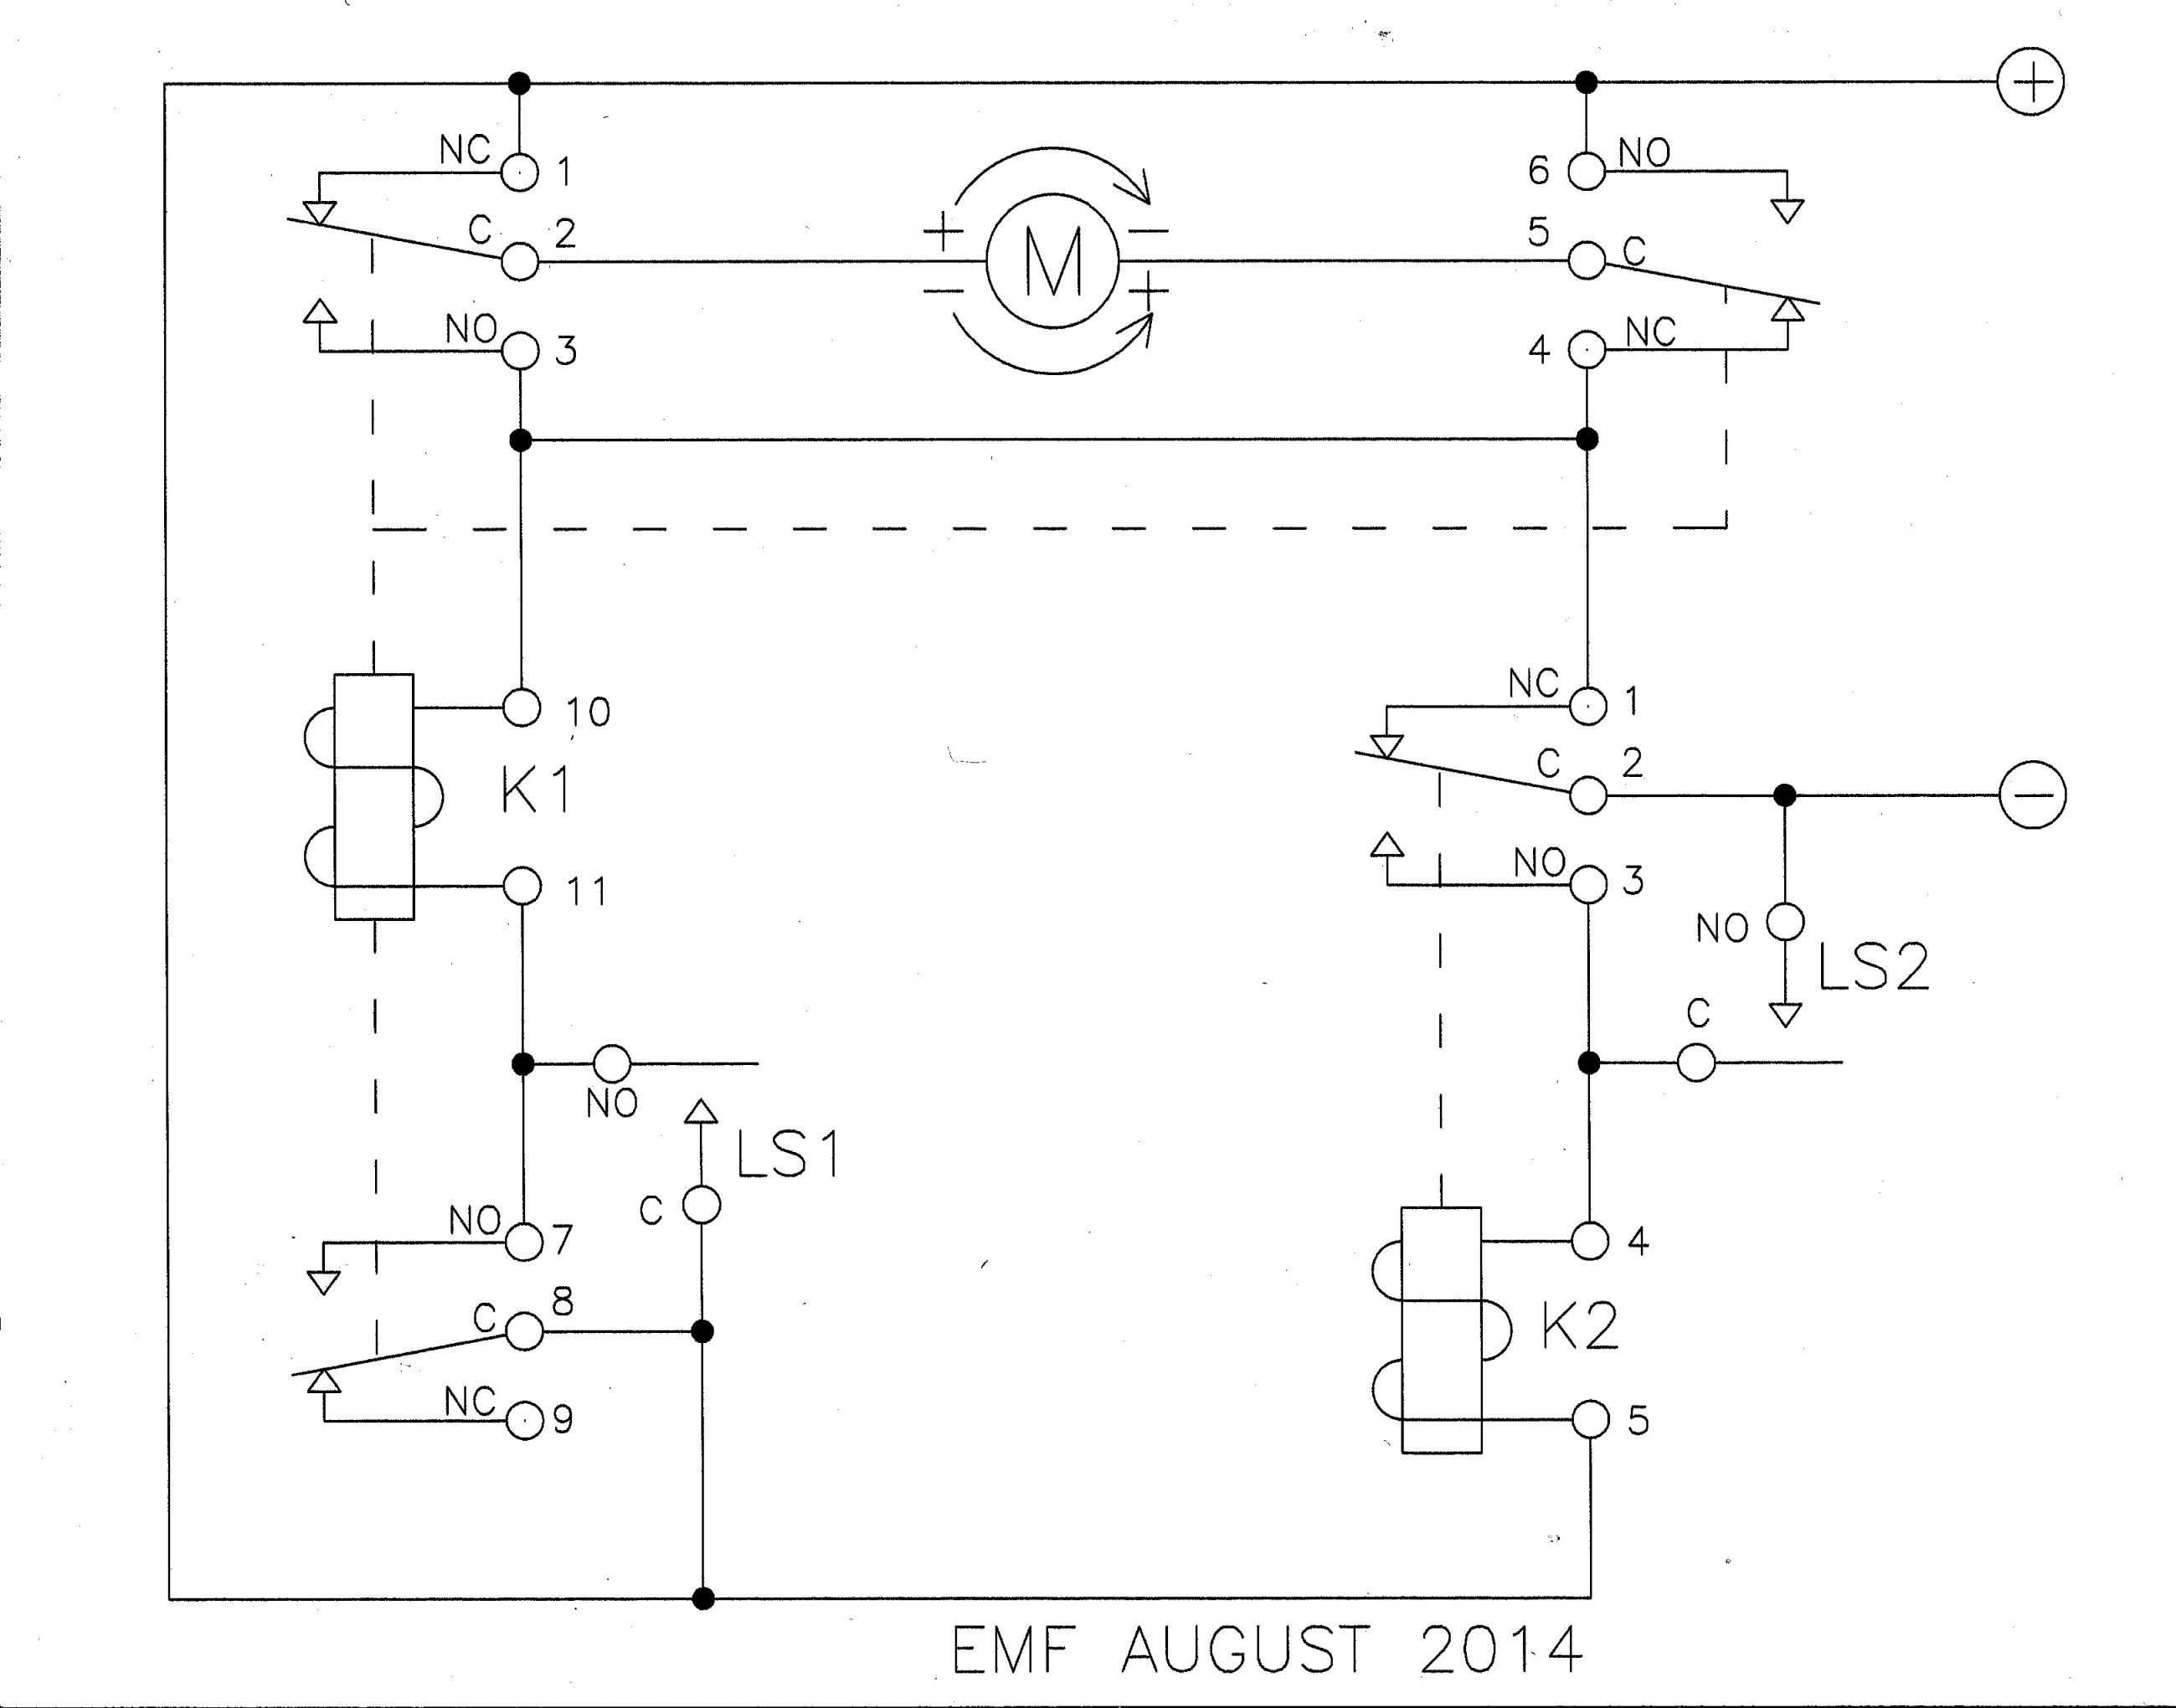 small resolution of idec relay wiring diagram wiring diagram centre idec latching relay diagram idec dpdt relay wiring diagram